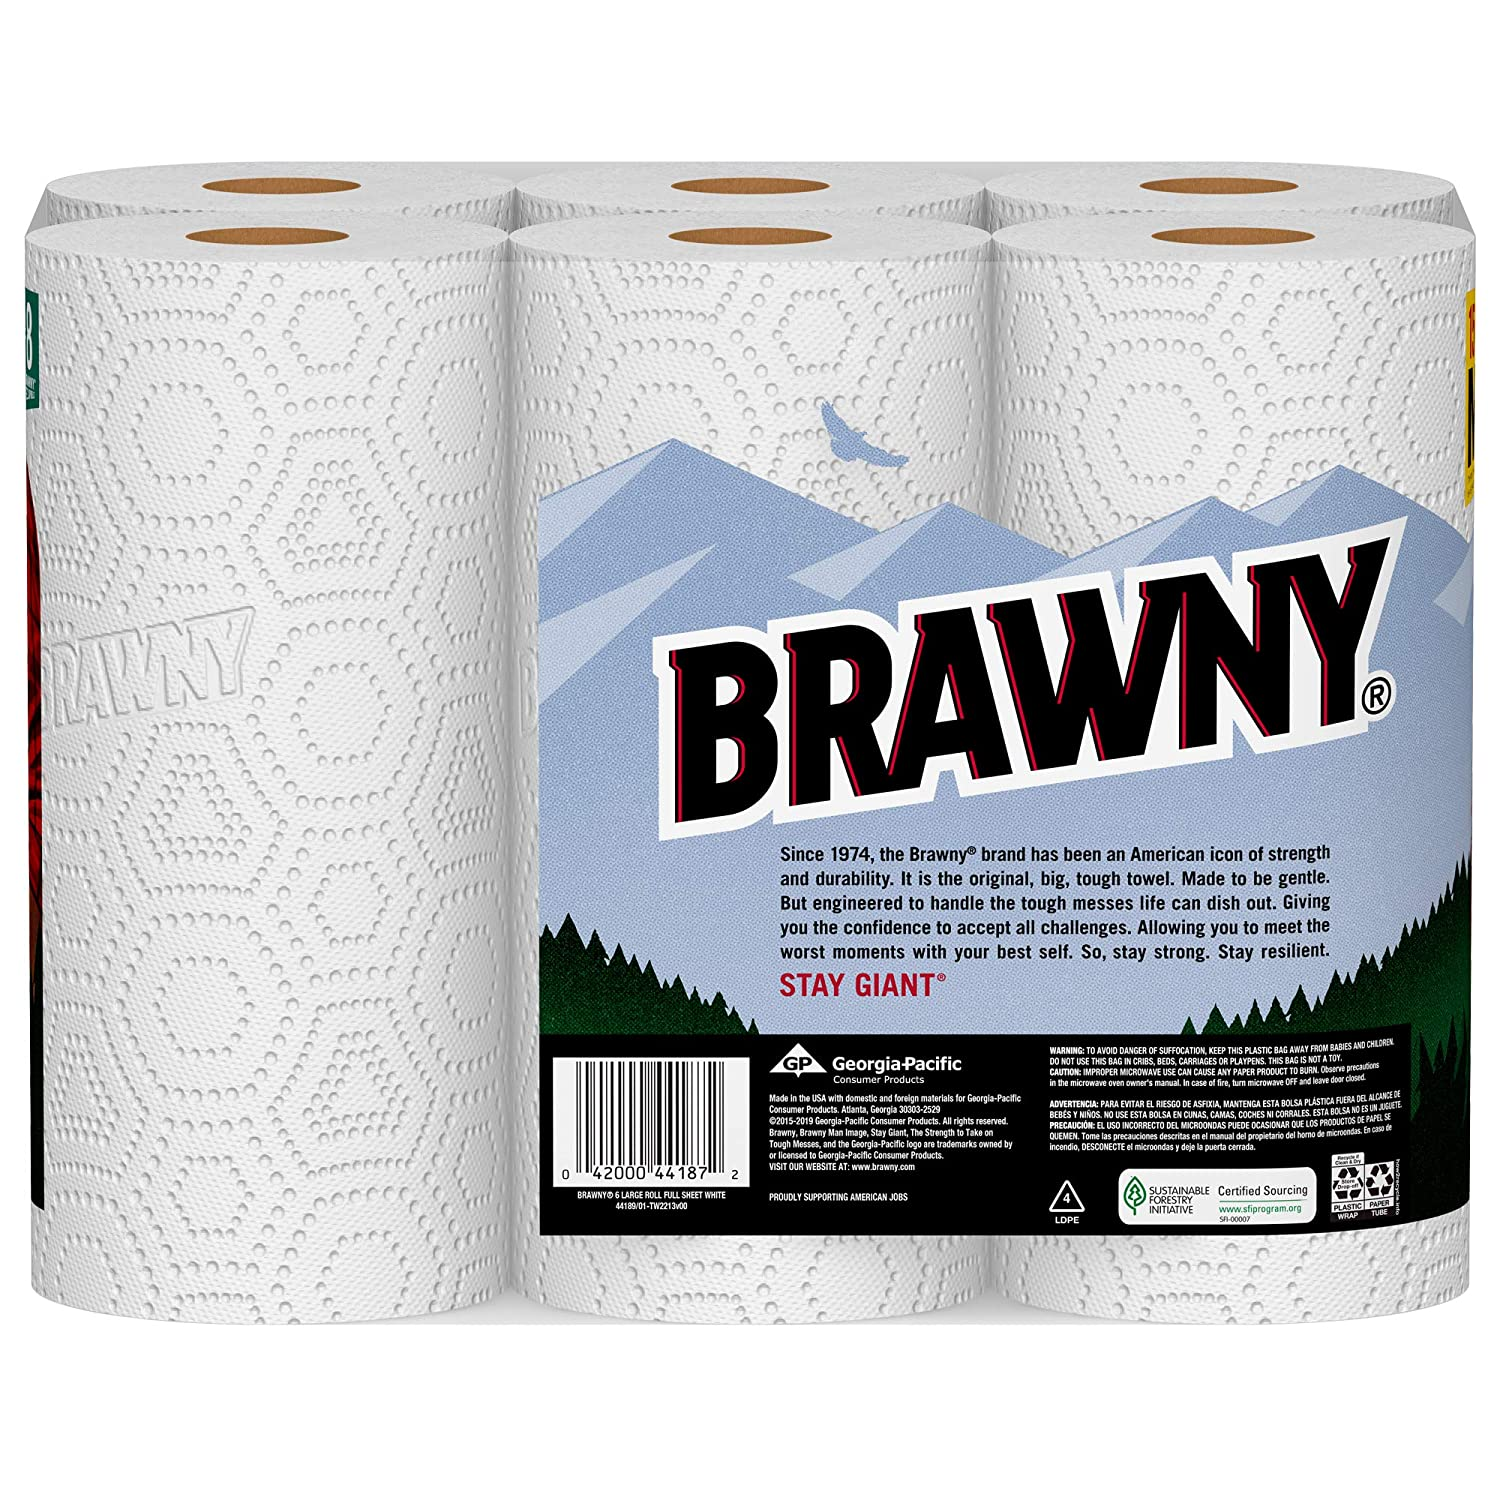 Brawny Paper Towels, 6 Large Rolls, Full Sheet, 6=8 Regular Rolls